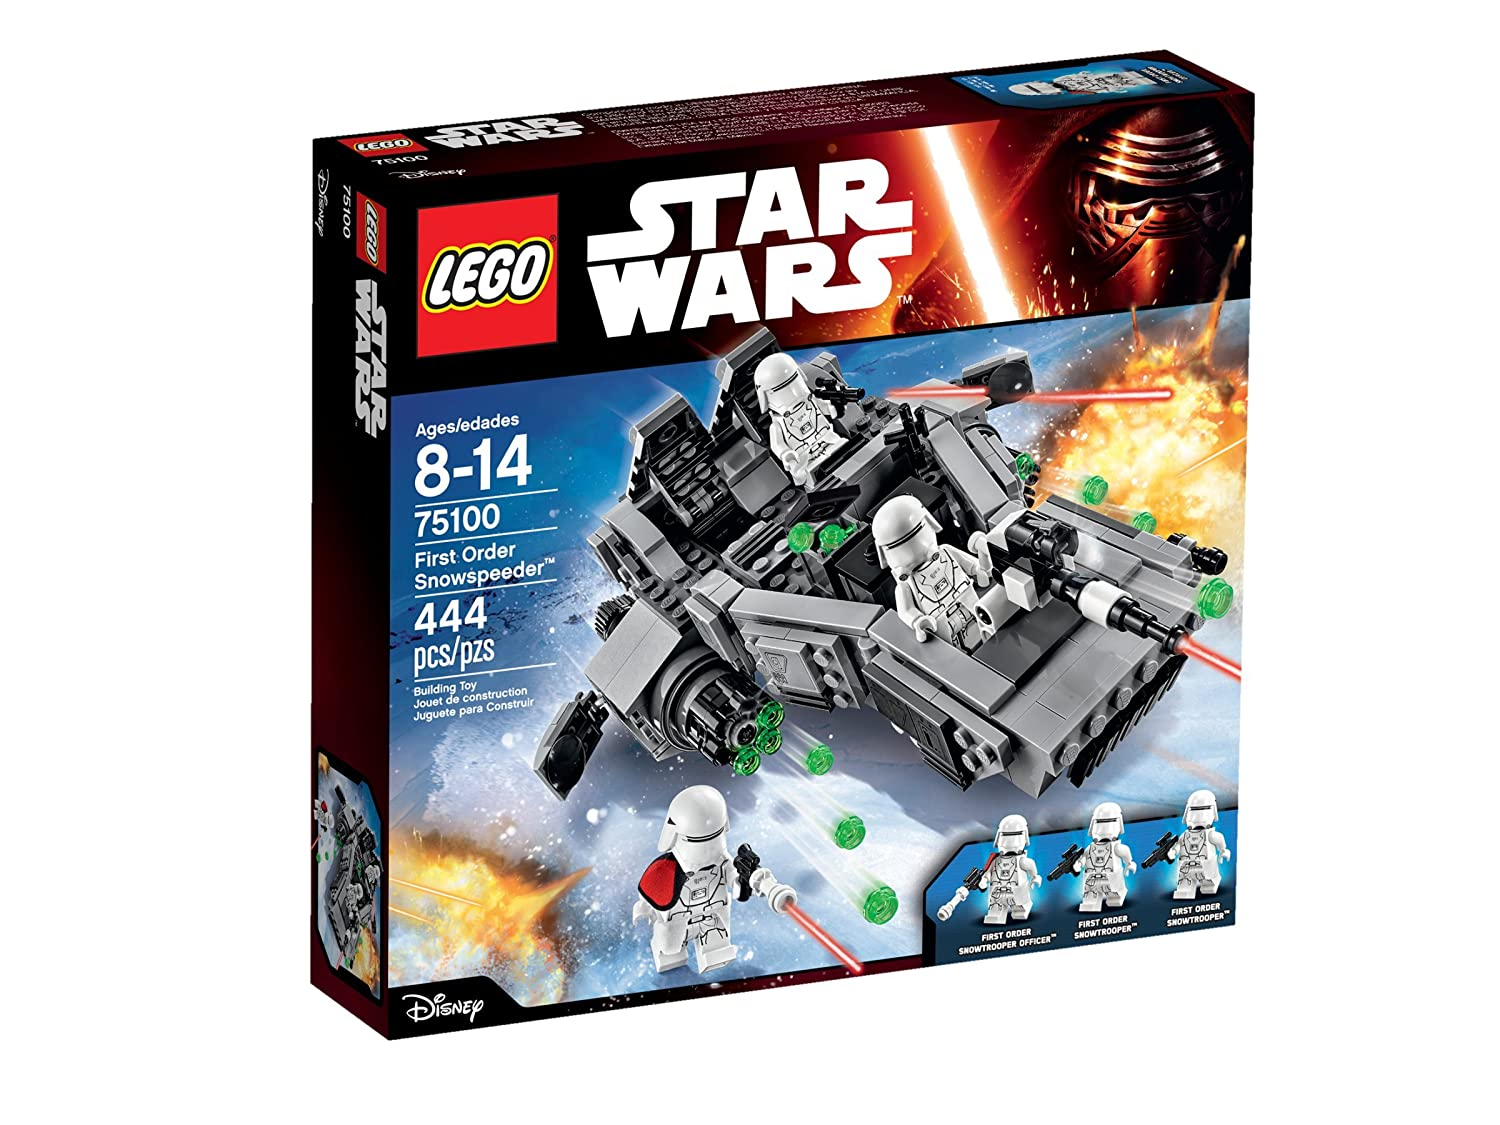 LEGO Star Wars First Order Snowspeeder 75100 Building Kit